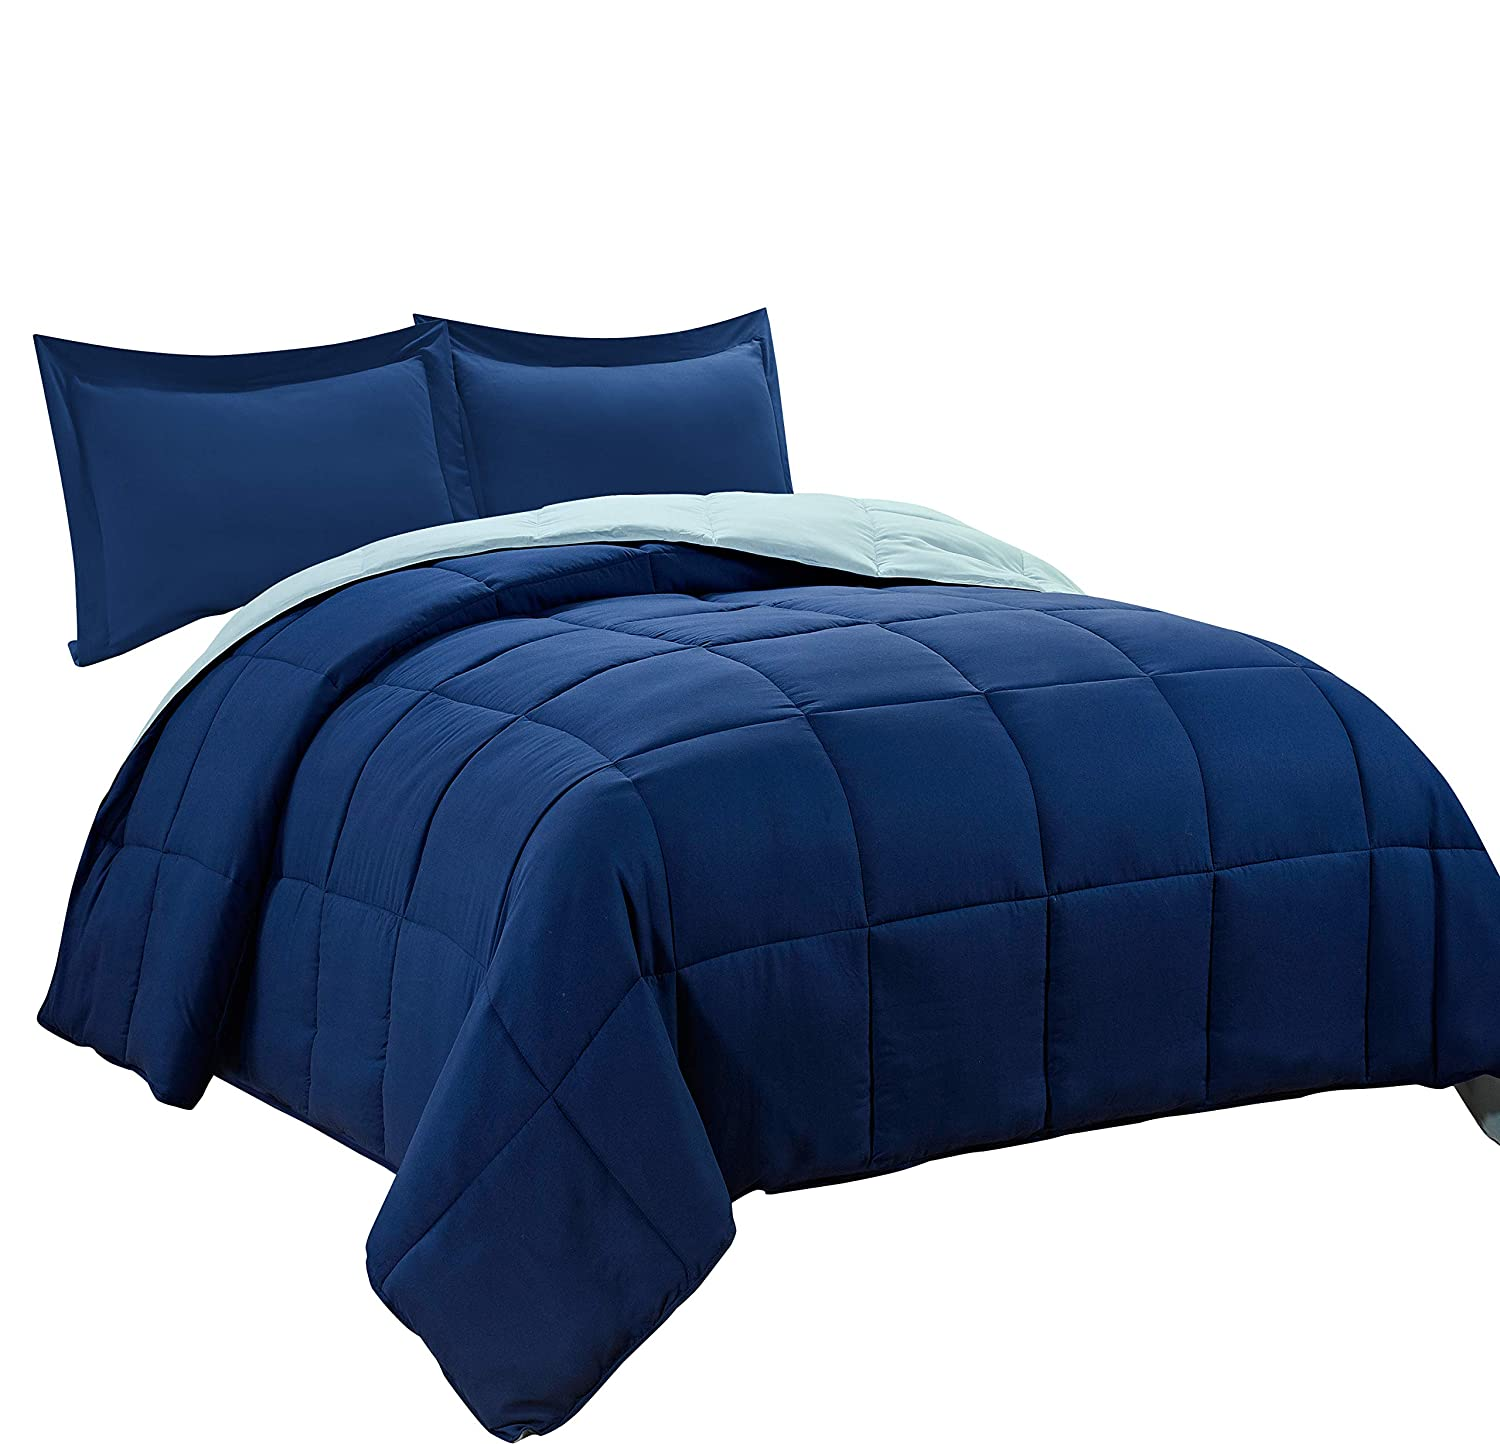 3pc Down Alternative Comforter Set -All Season Reversible Comforter with Two Shams -Quilted Duvet Insert with Corner Tabs -Box Stitched –Hypoallergenic, Soft, Fluffy (King/Cal King, Navy /Light Blue)